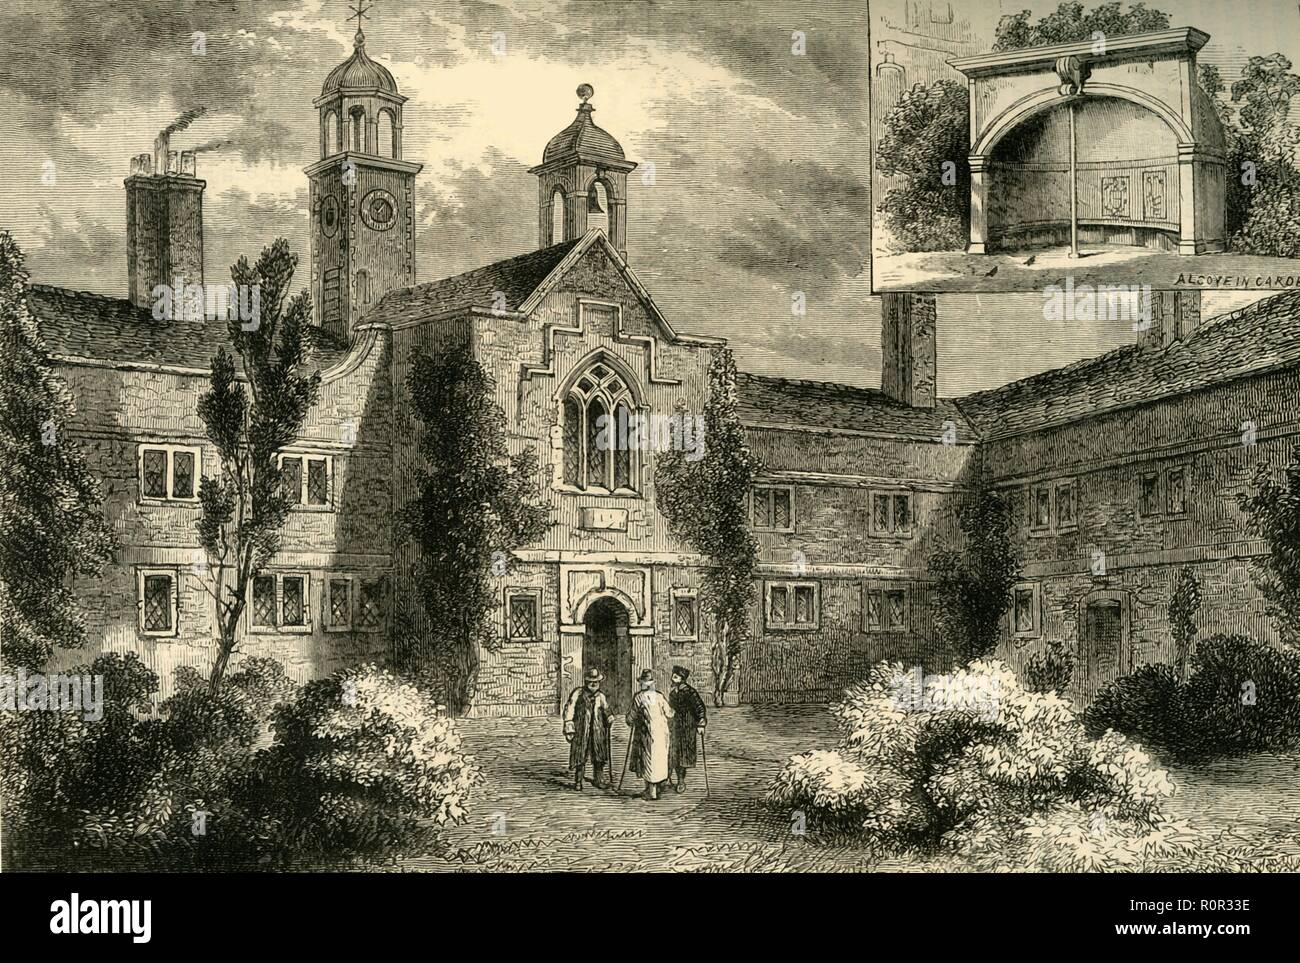 'The Fishmongers' Almshouses in 1850', (c1878). The Fishmongers' Almshouses, also known as St Peter's Hospital, in the village of Newington Butts, (now part of south London). Inset shows an alcove in the garden. St Peter's Hospital was built by the Worshipful Company of Fishmongers in 1615-1618. New buildings at East Hill in Wandsworth were put up in 1851 and the Newingoton almshouses were demolished. From Old and New London: A Narrative of Its History, Its People, And Its Places. The Southern Suburbs, Volume VI, by Edward Walford. [Cassell, Petter, Galpin & Co., London, Paris & New Yo - Stock Image